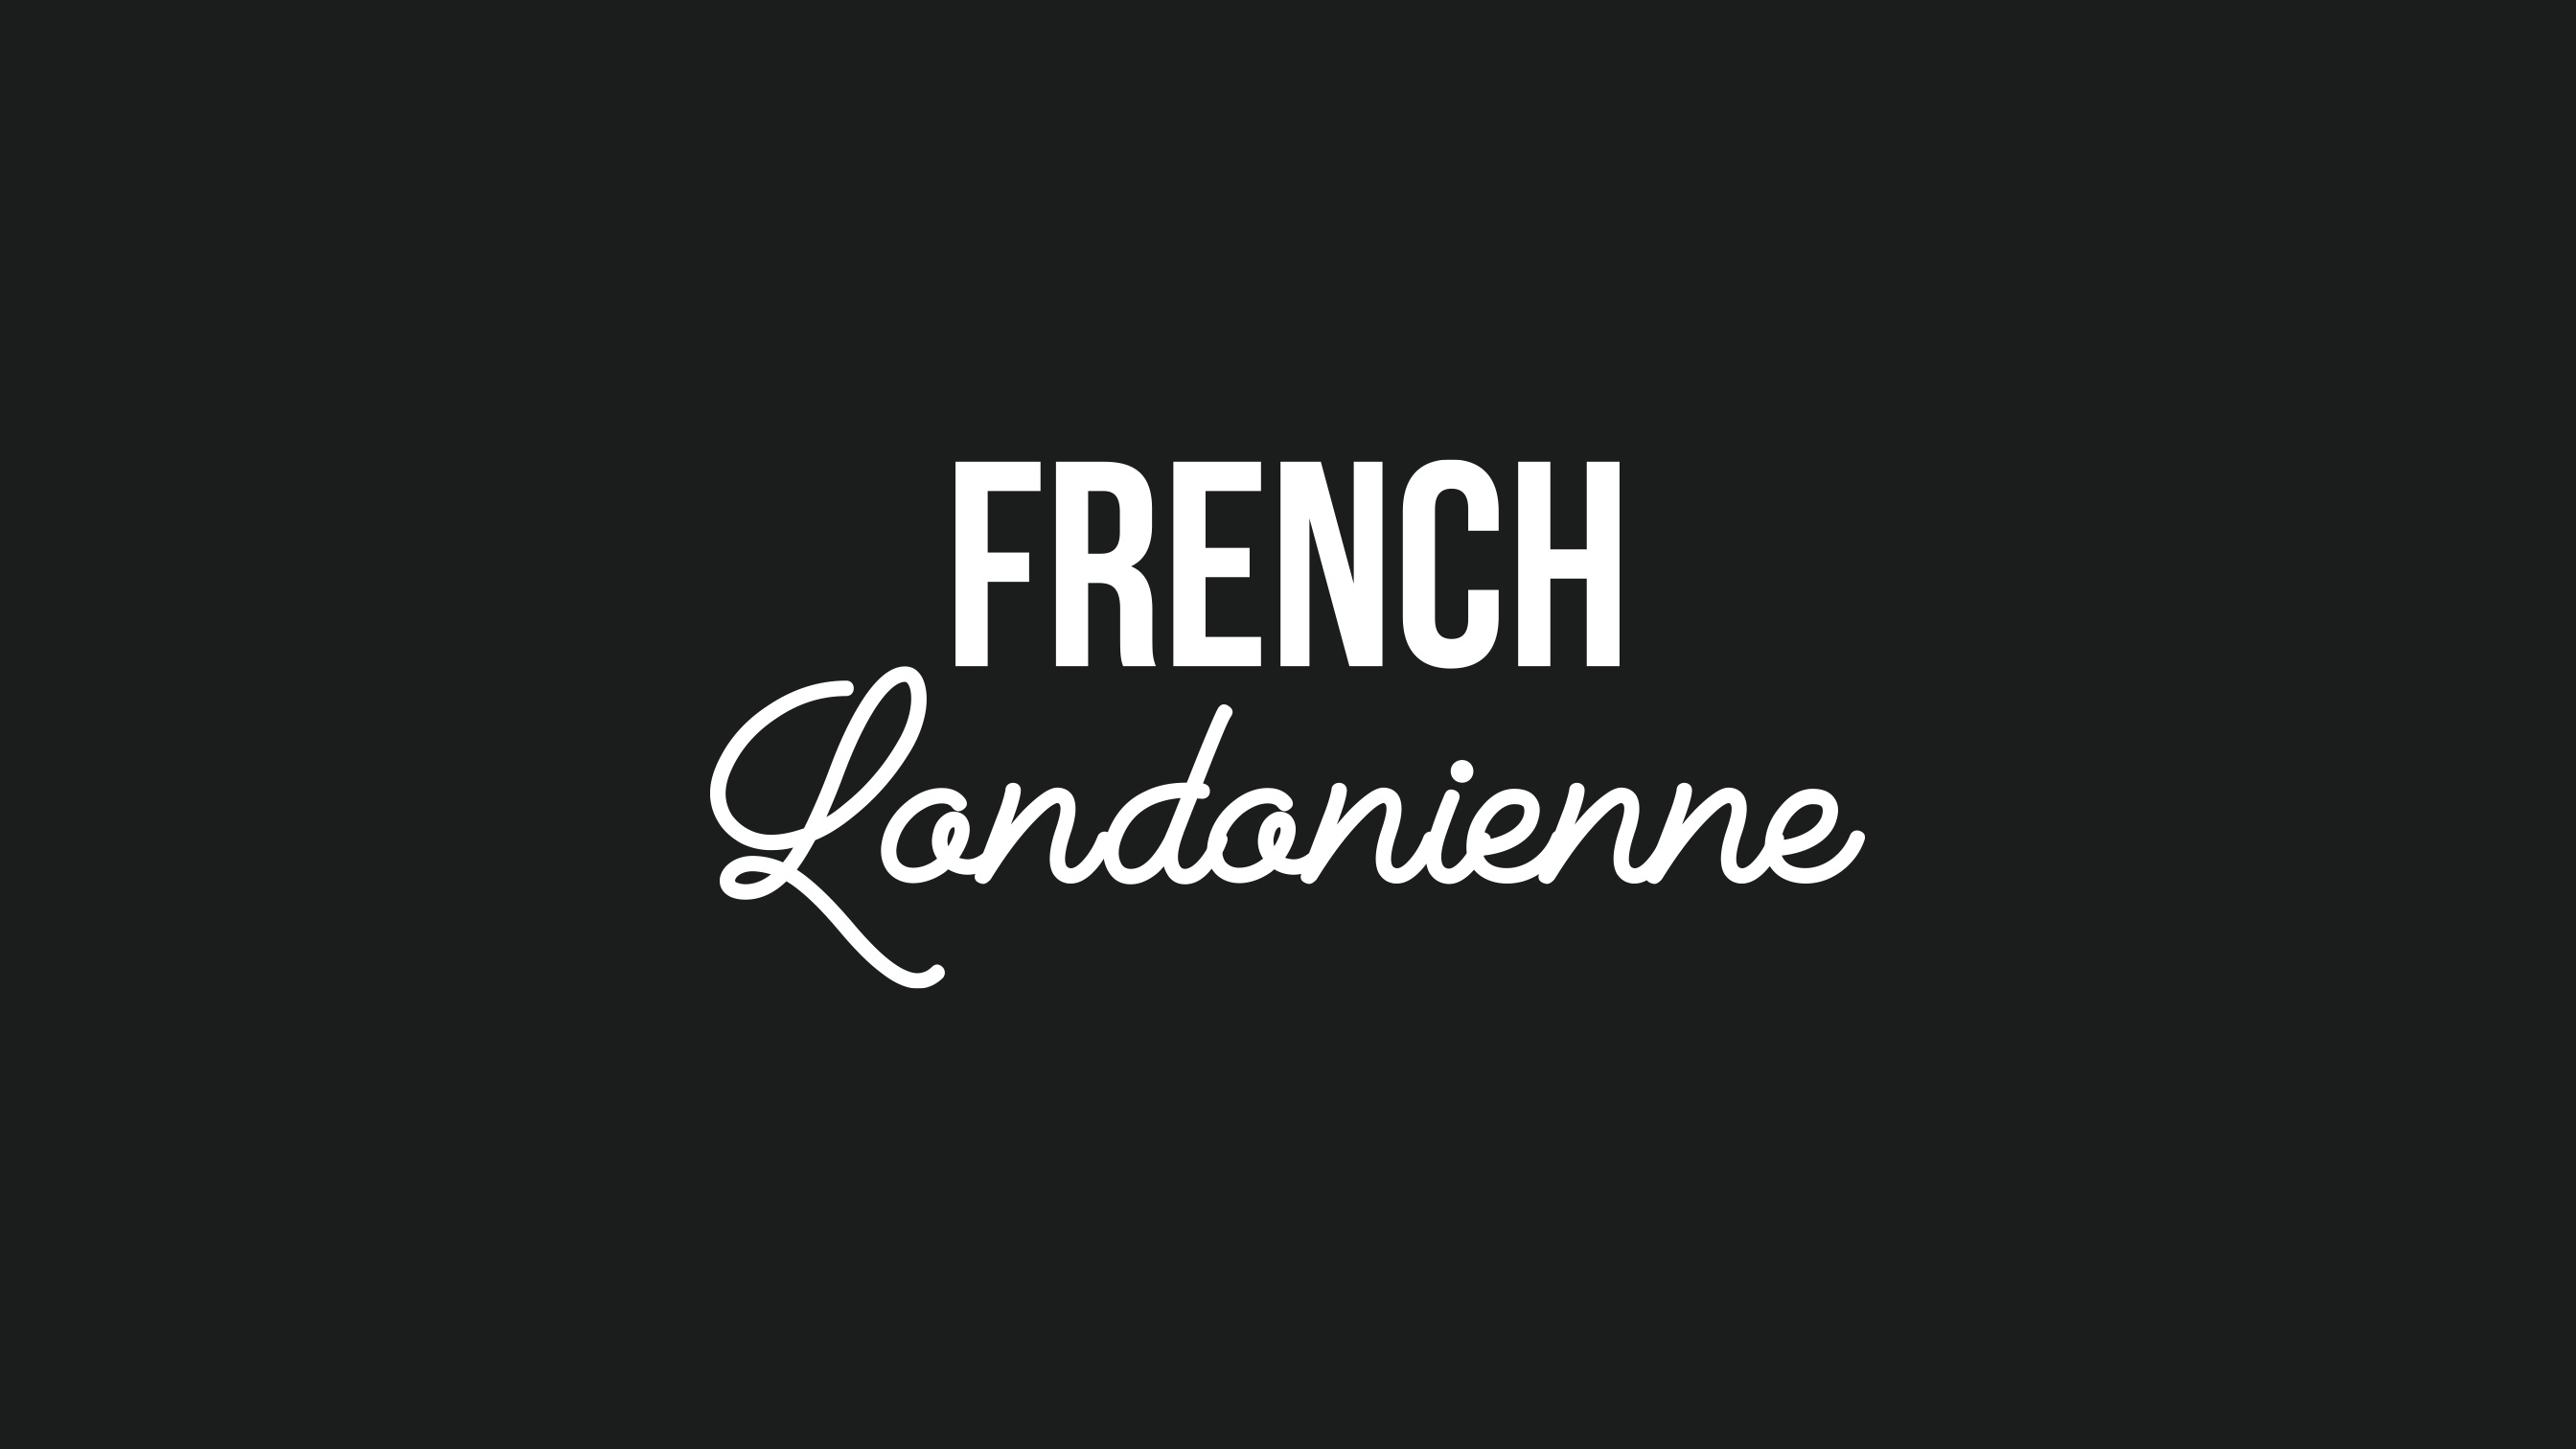 01-french-londonienne-pikteo-webdesign-graphic-design-freelance-paris-bruxelles-londres